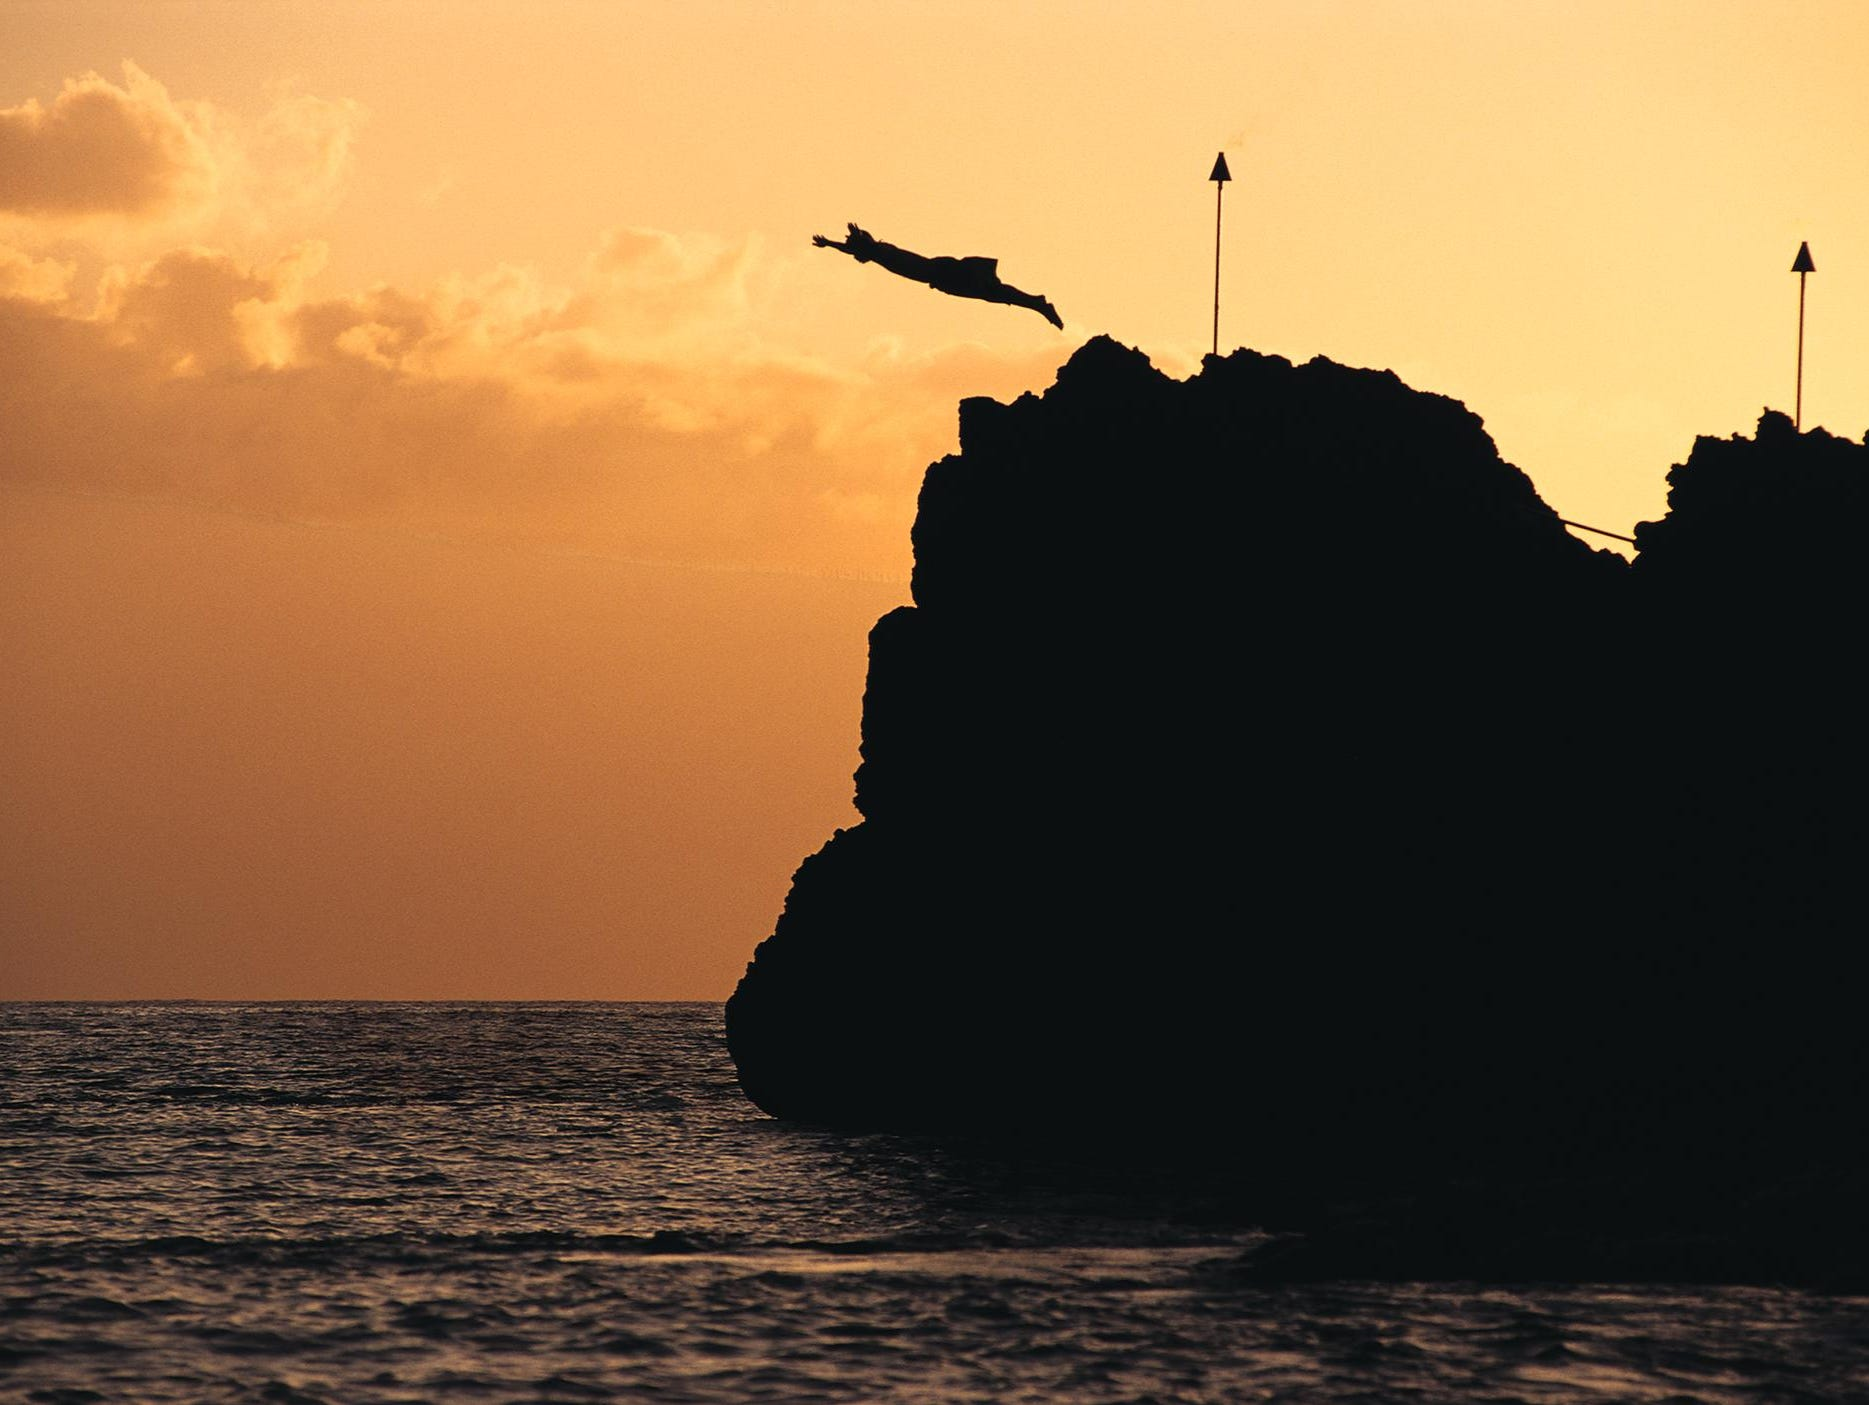 As the sun begins its slow dive into the ocean, torch lighting signals the nightly ritual of lele kawa (cliff diving) at Sheraton Maui Resort & Spa.